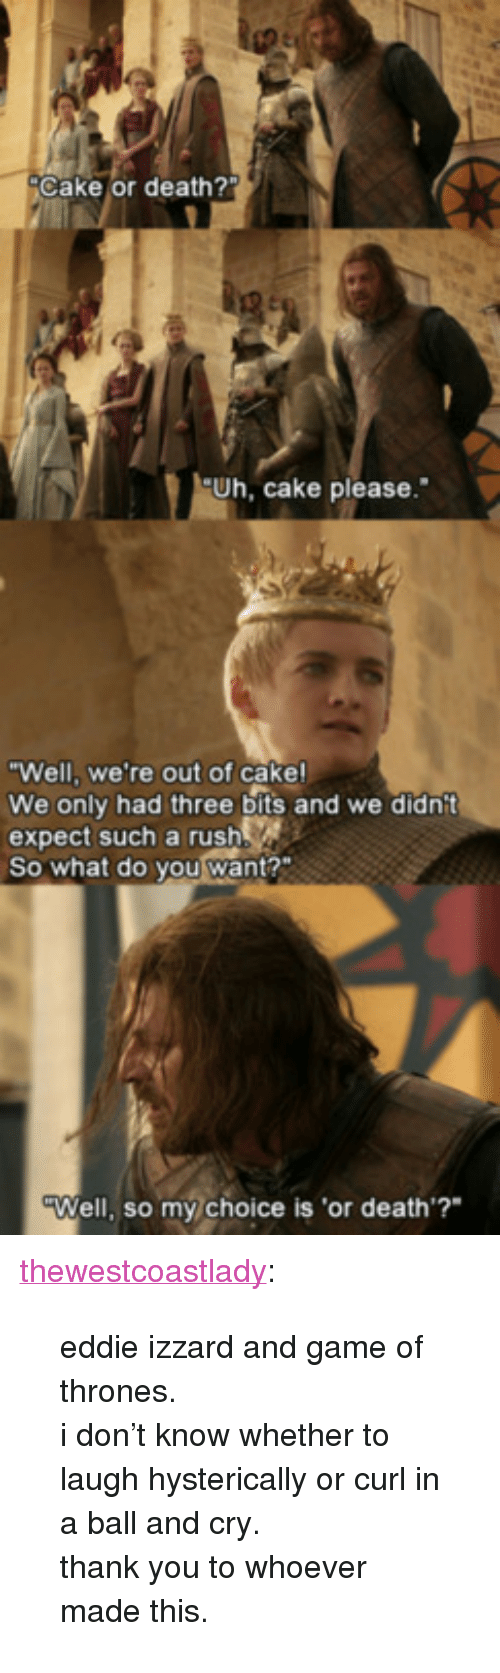 """Game of Thrones: Cake or death?  Uh, cake please.  Well, we're out of cake!  We only had three bits and we didnit  expect such a rush  So what do you want?""""  Well, so my choice is 'or death'? <p><a class=""""tumblr_blog"""" href=""""http://thewestcoastlady.tumblr.com/post/51903149171/eddie-izzard-and-game-of-thrones-i-dont-know"""">thewestcoastlady</a>:</p> <blockquote> <p>eddie izzard and game of thrones.</p> <p>i don't know whether to laugh hysterically or curl in a ball and cry.</p> <p>thank you to whoever made this.</p> </blockquote>"""